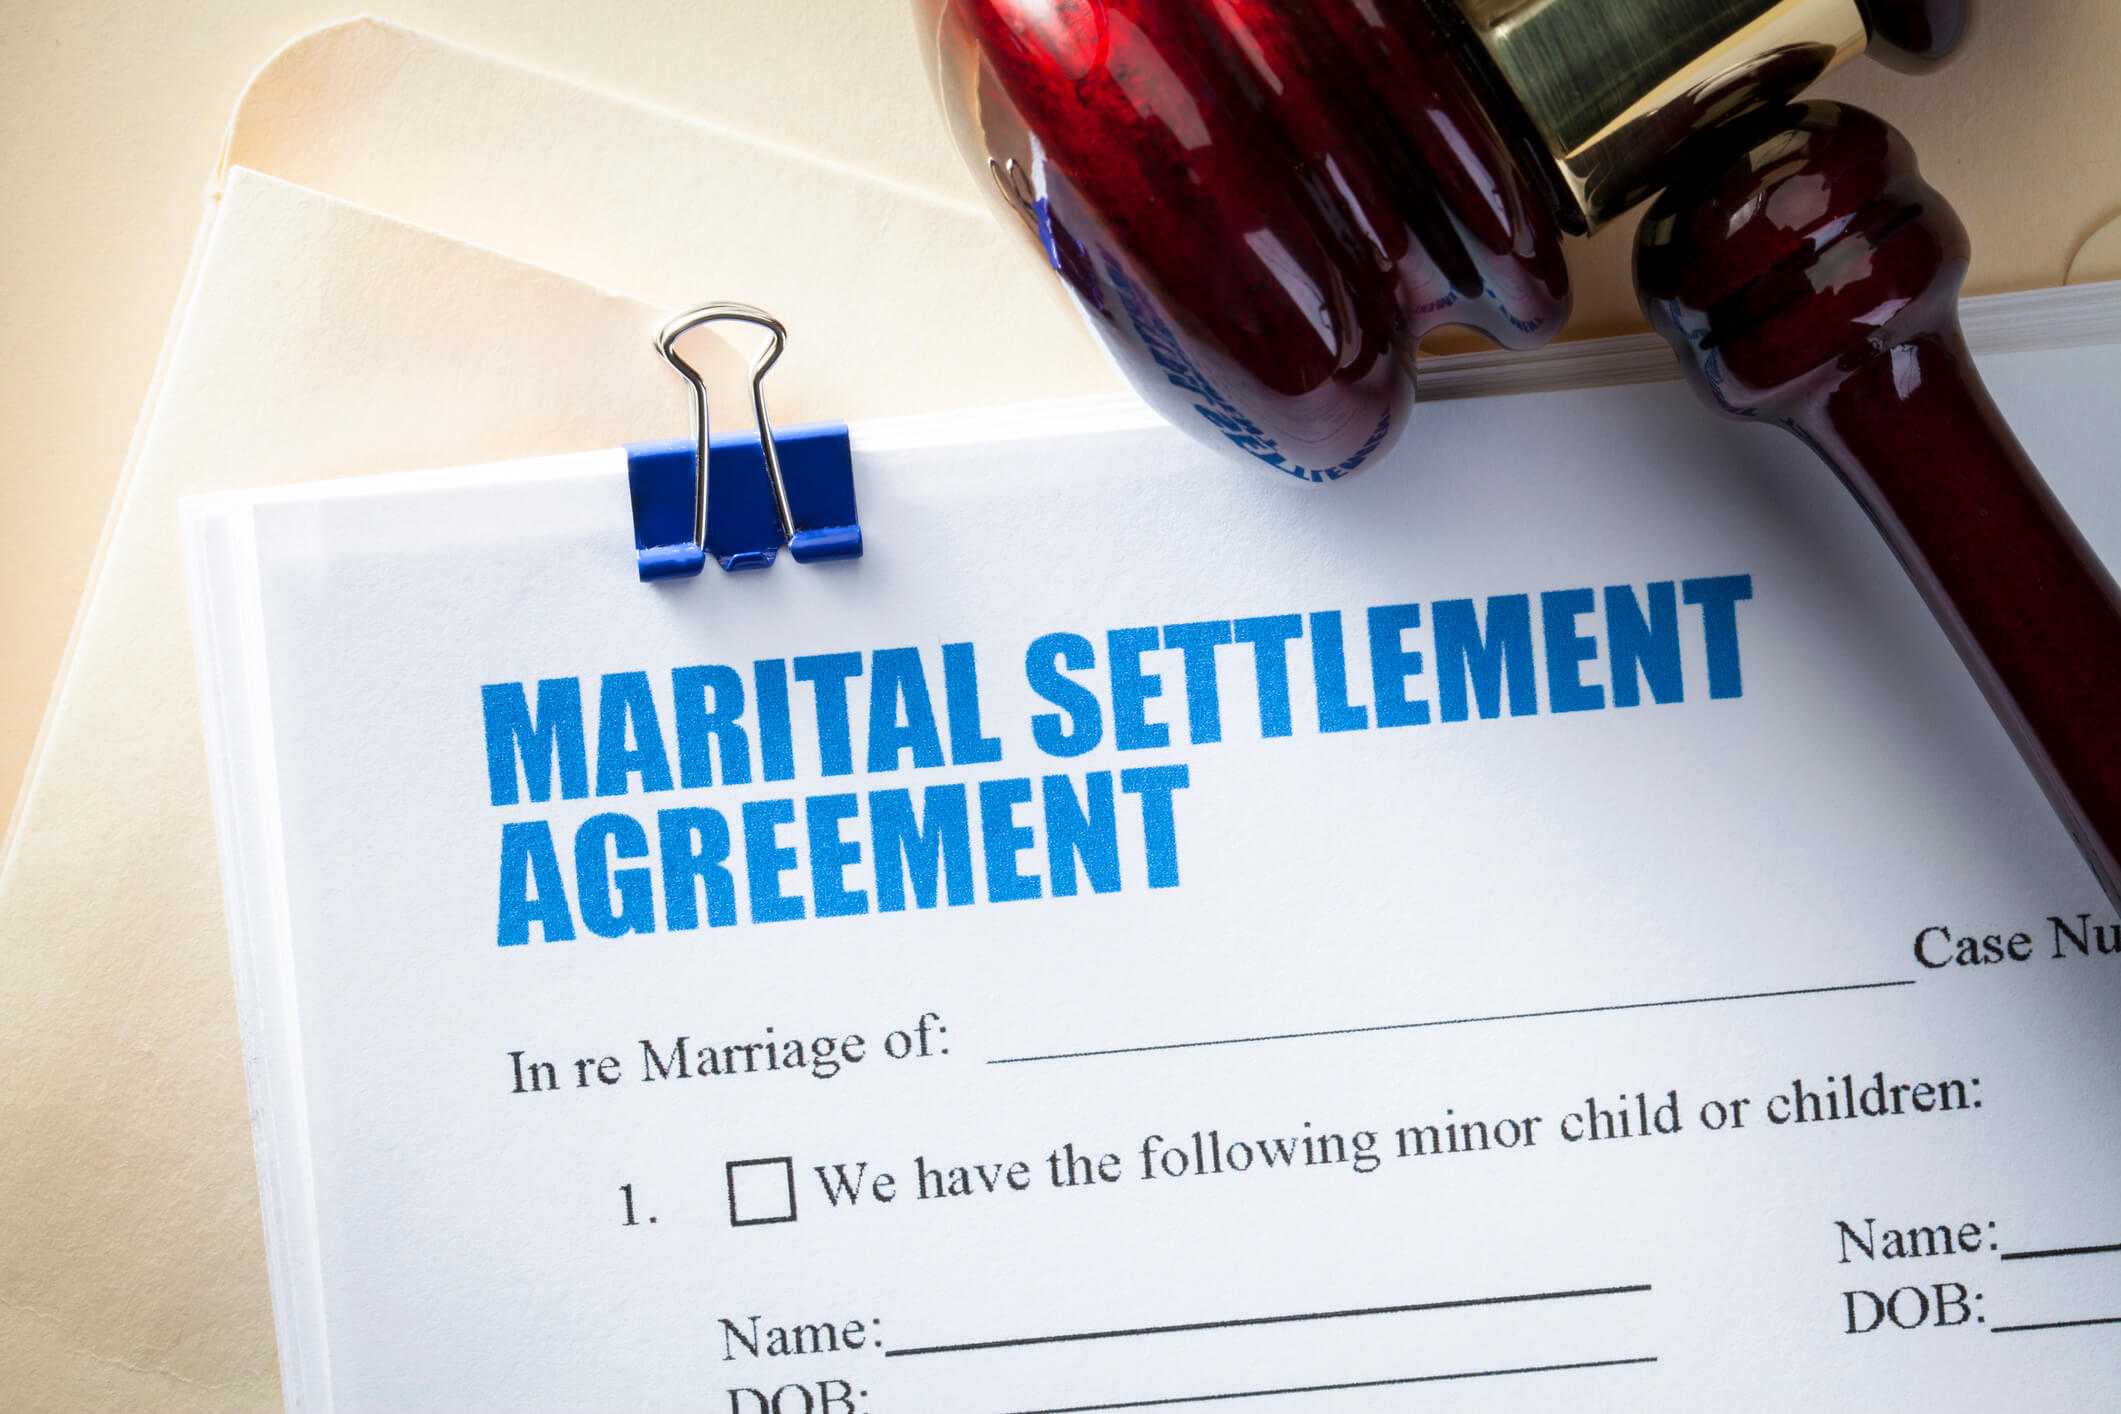 Marriage support agreement